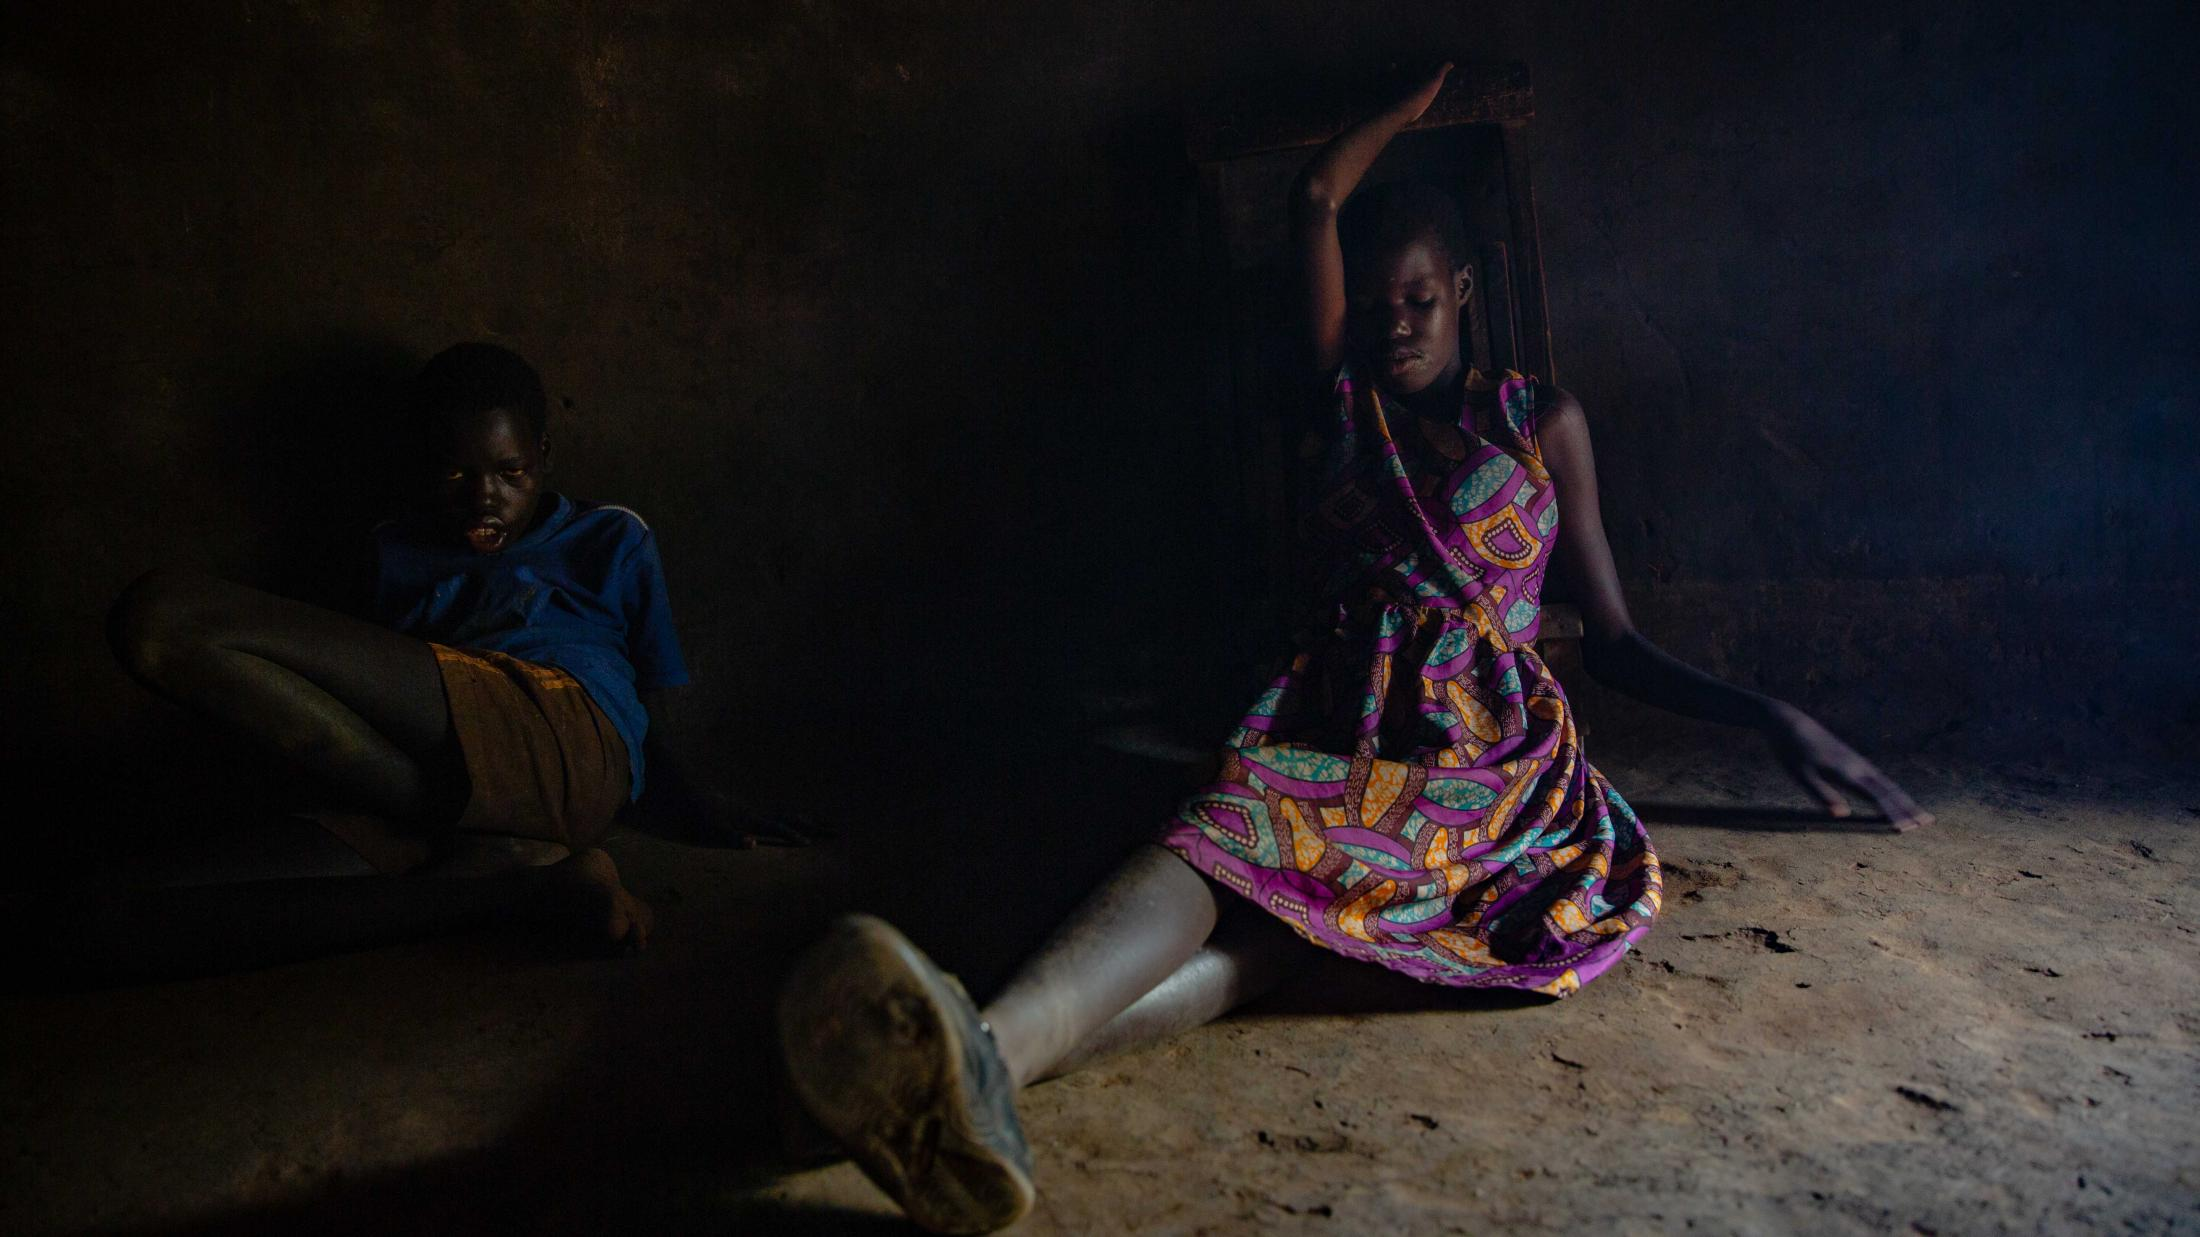 Ochora Walter, 16, and Aciro Grace,18 at home in Omoro District. The disease makes the affected children mostly inactive and they lose their childhood and young adulthood active lives to the disease.